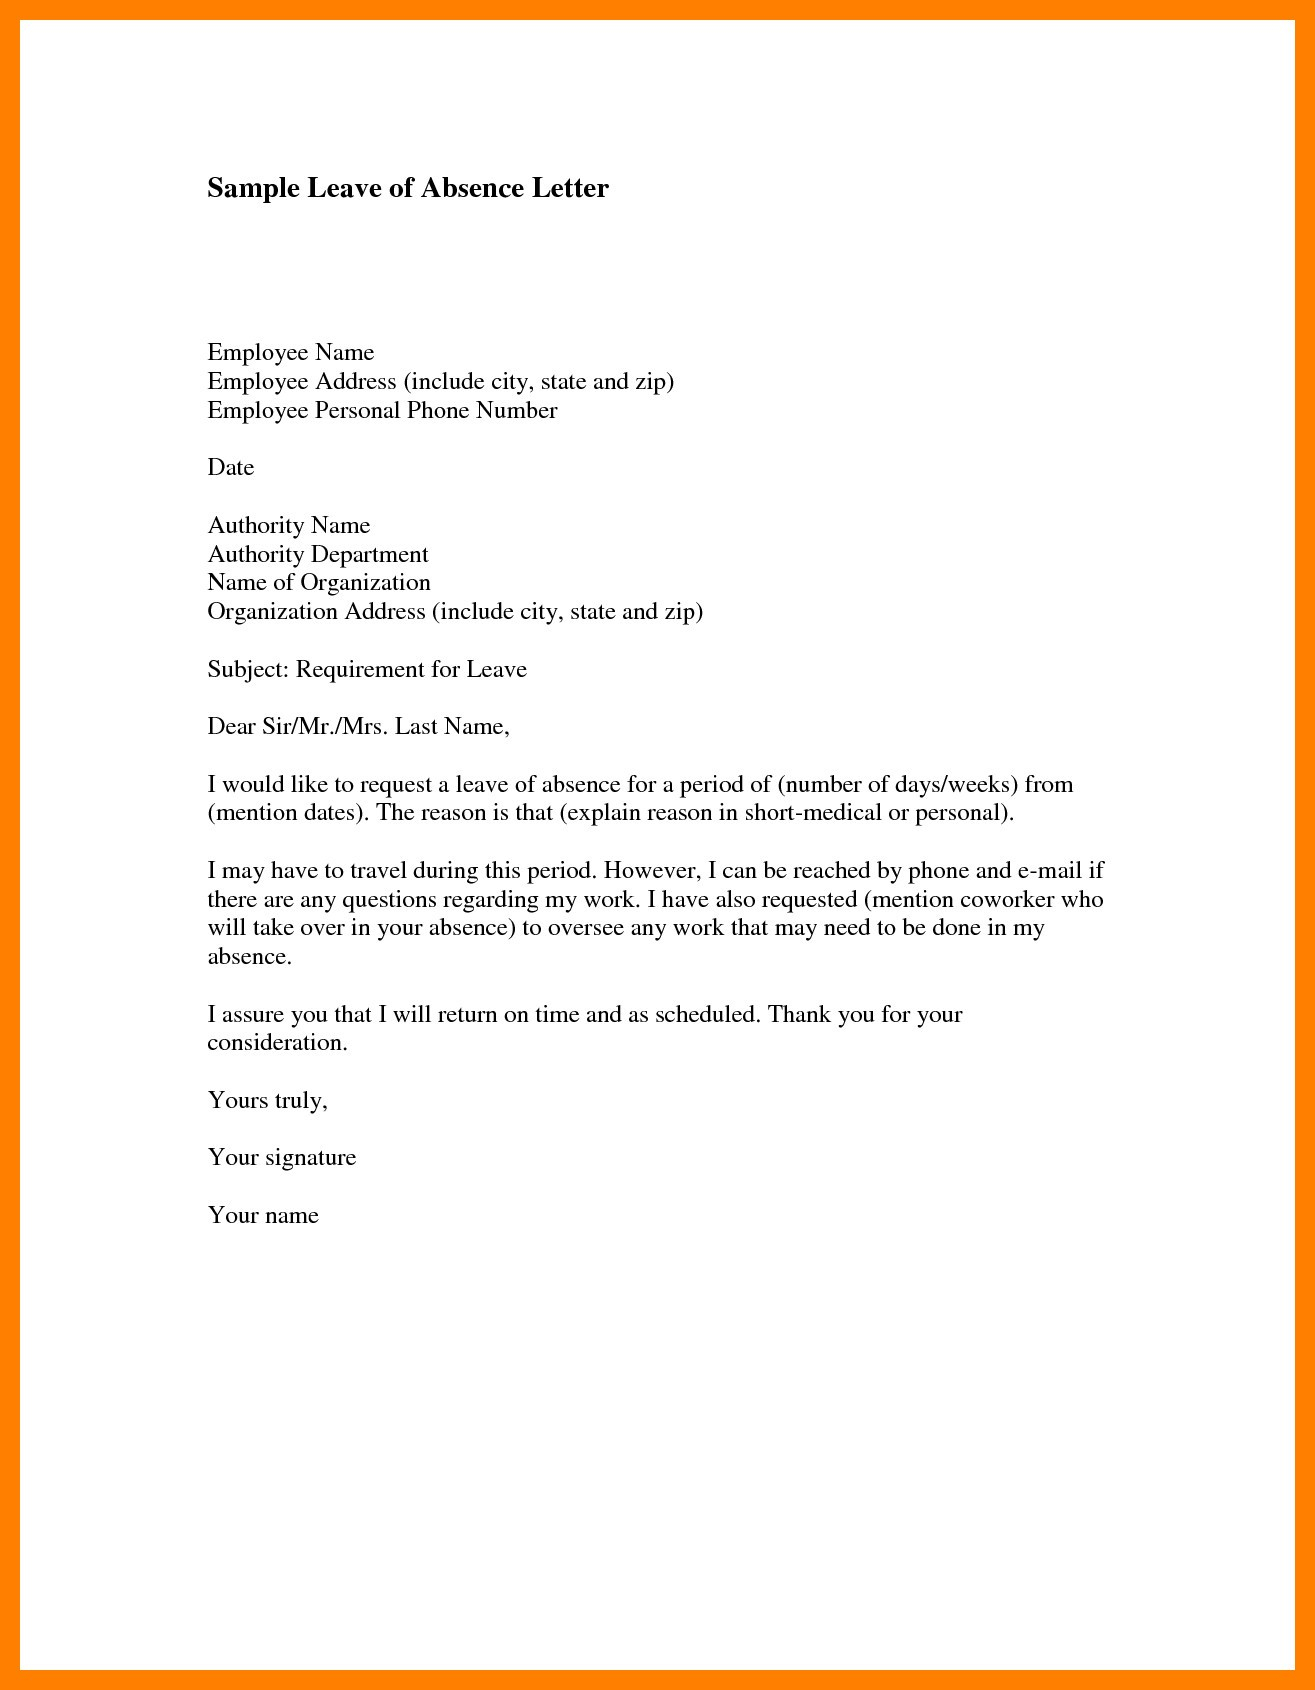 personal leave of absence letter template Collection-Leave Letter format for Employee New Sample Leave Absence Letter to Employee New Samples 1-q